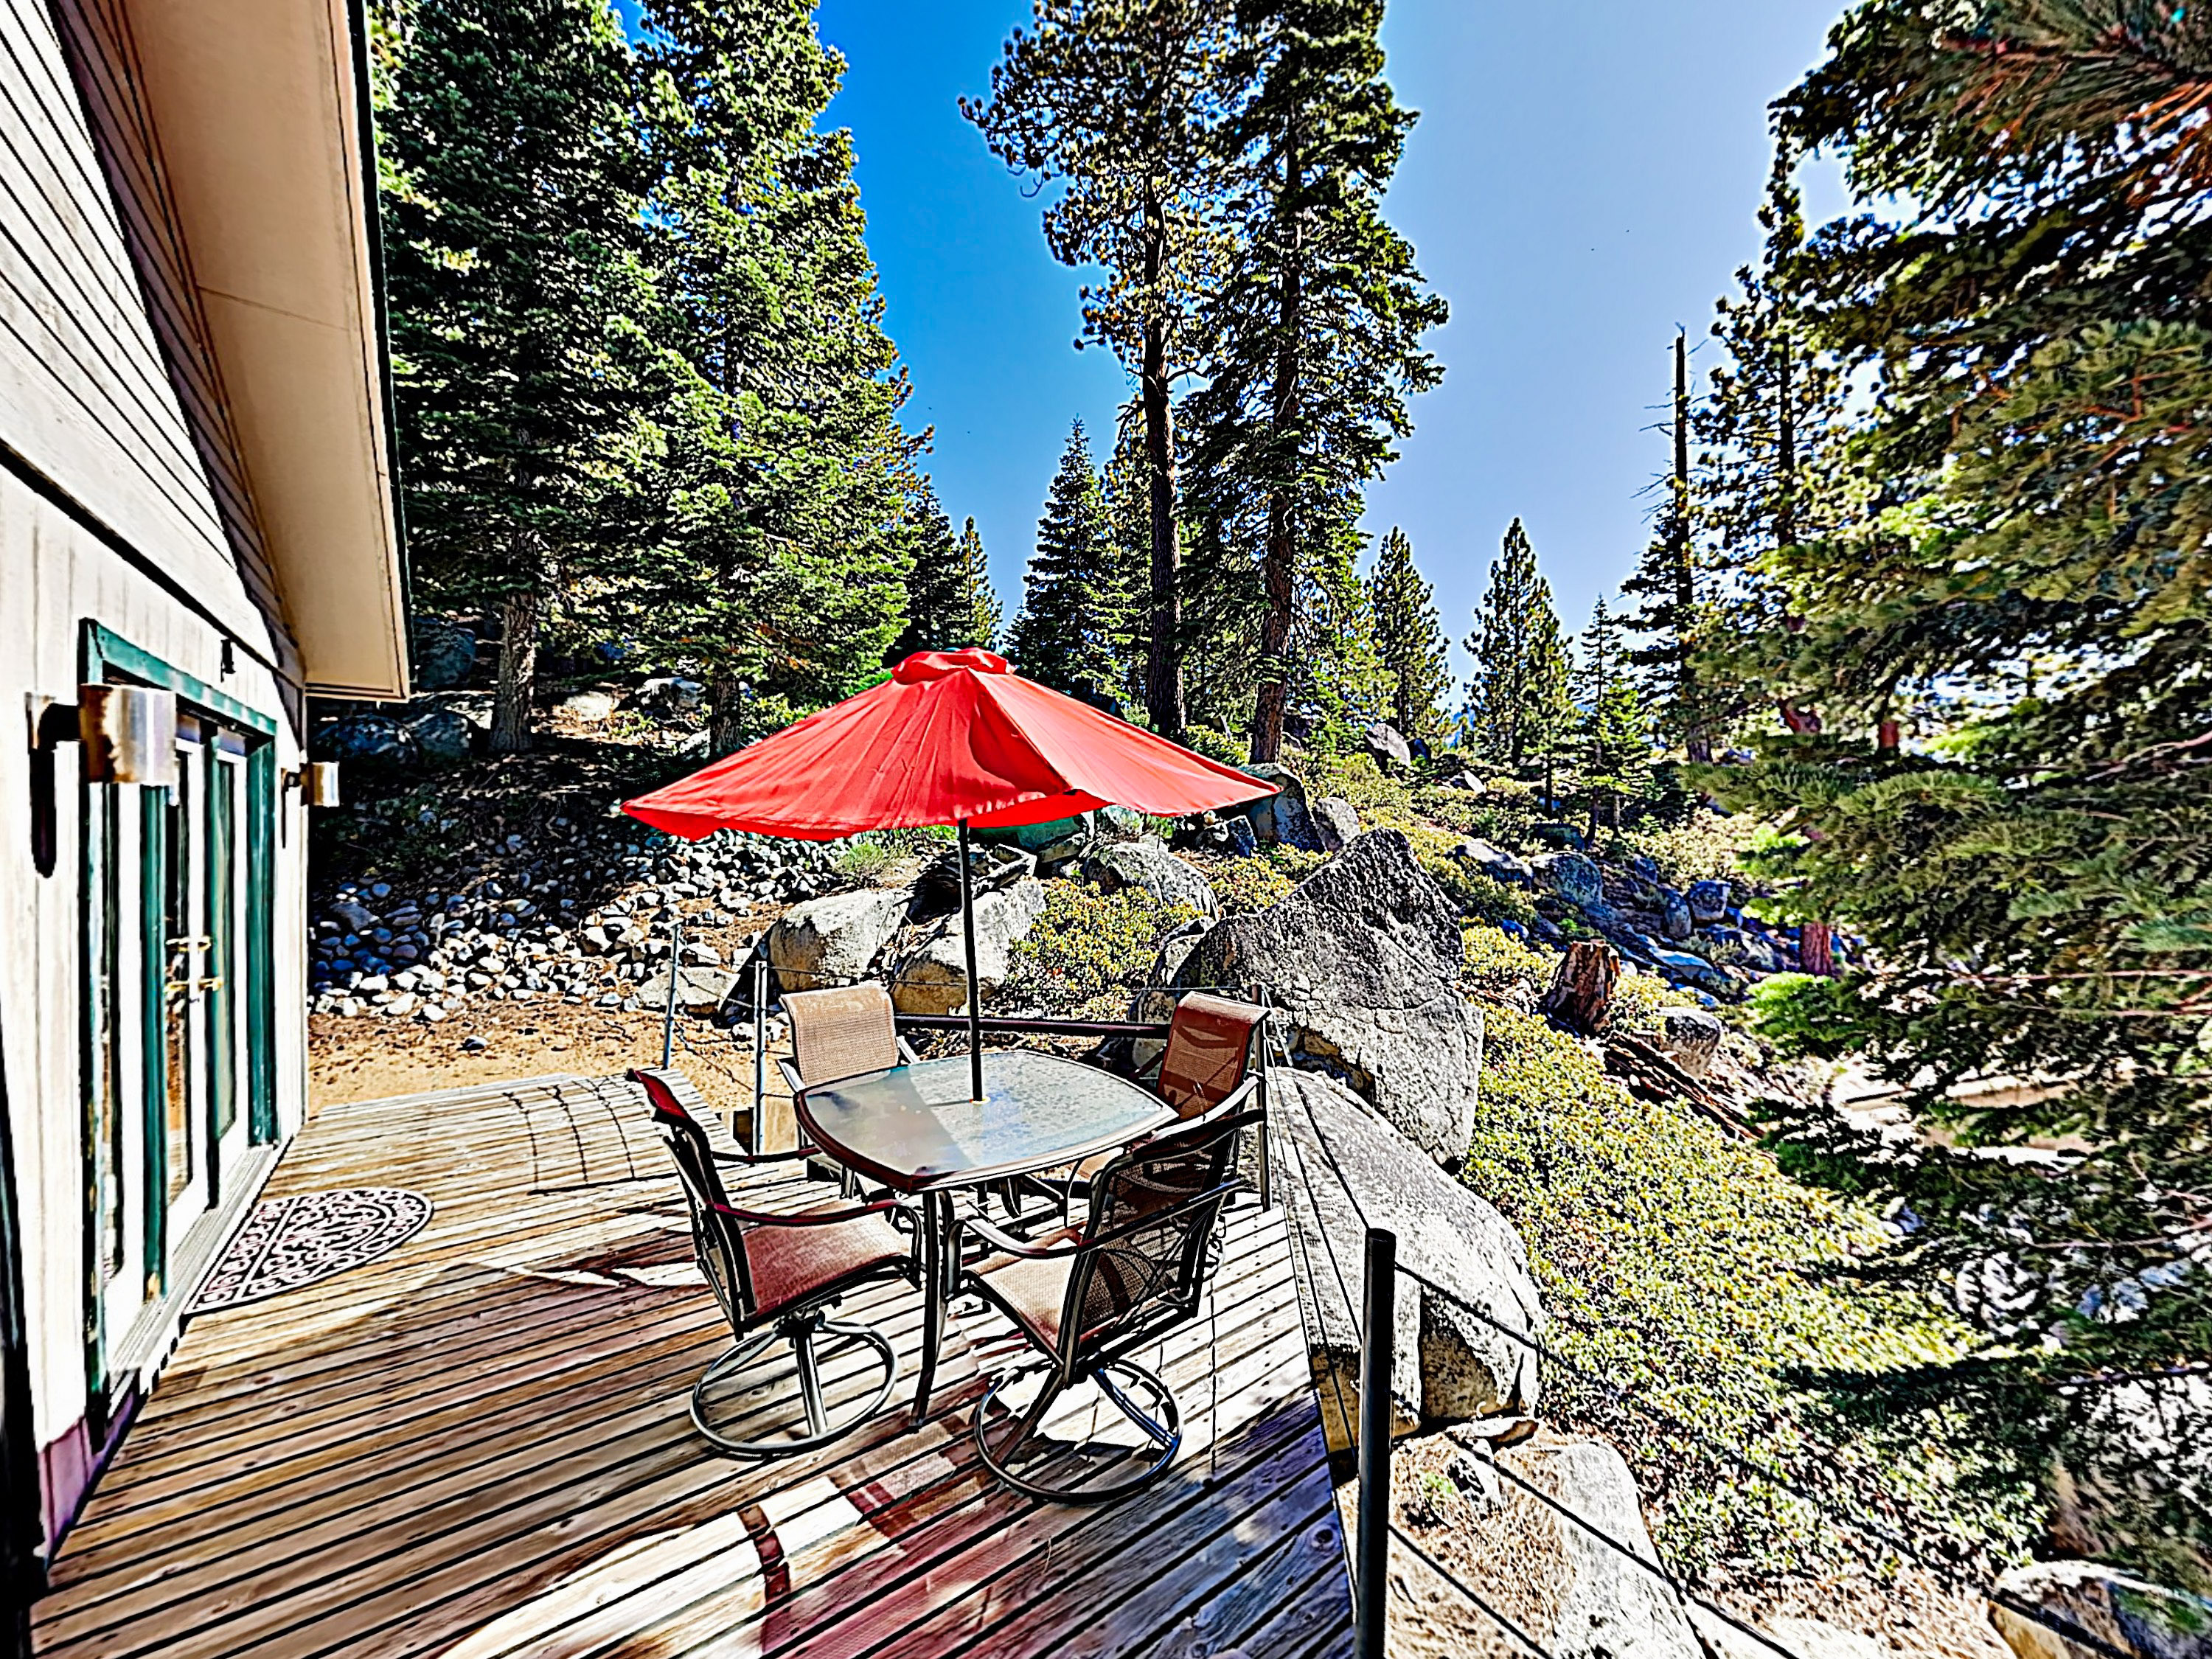 Stateline NV Vacation Rental Welcome to Stateline!